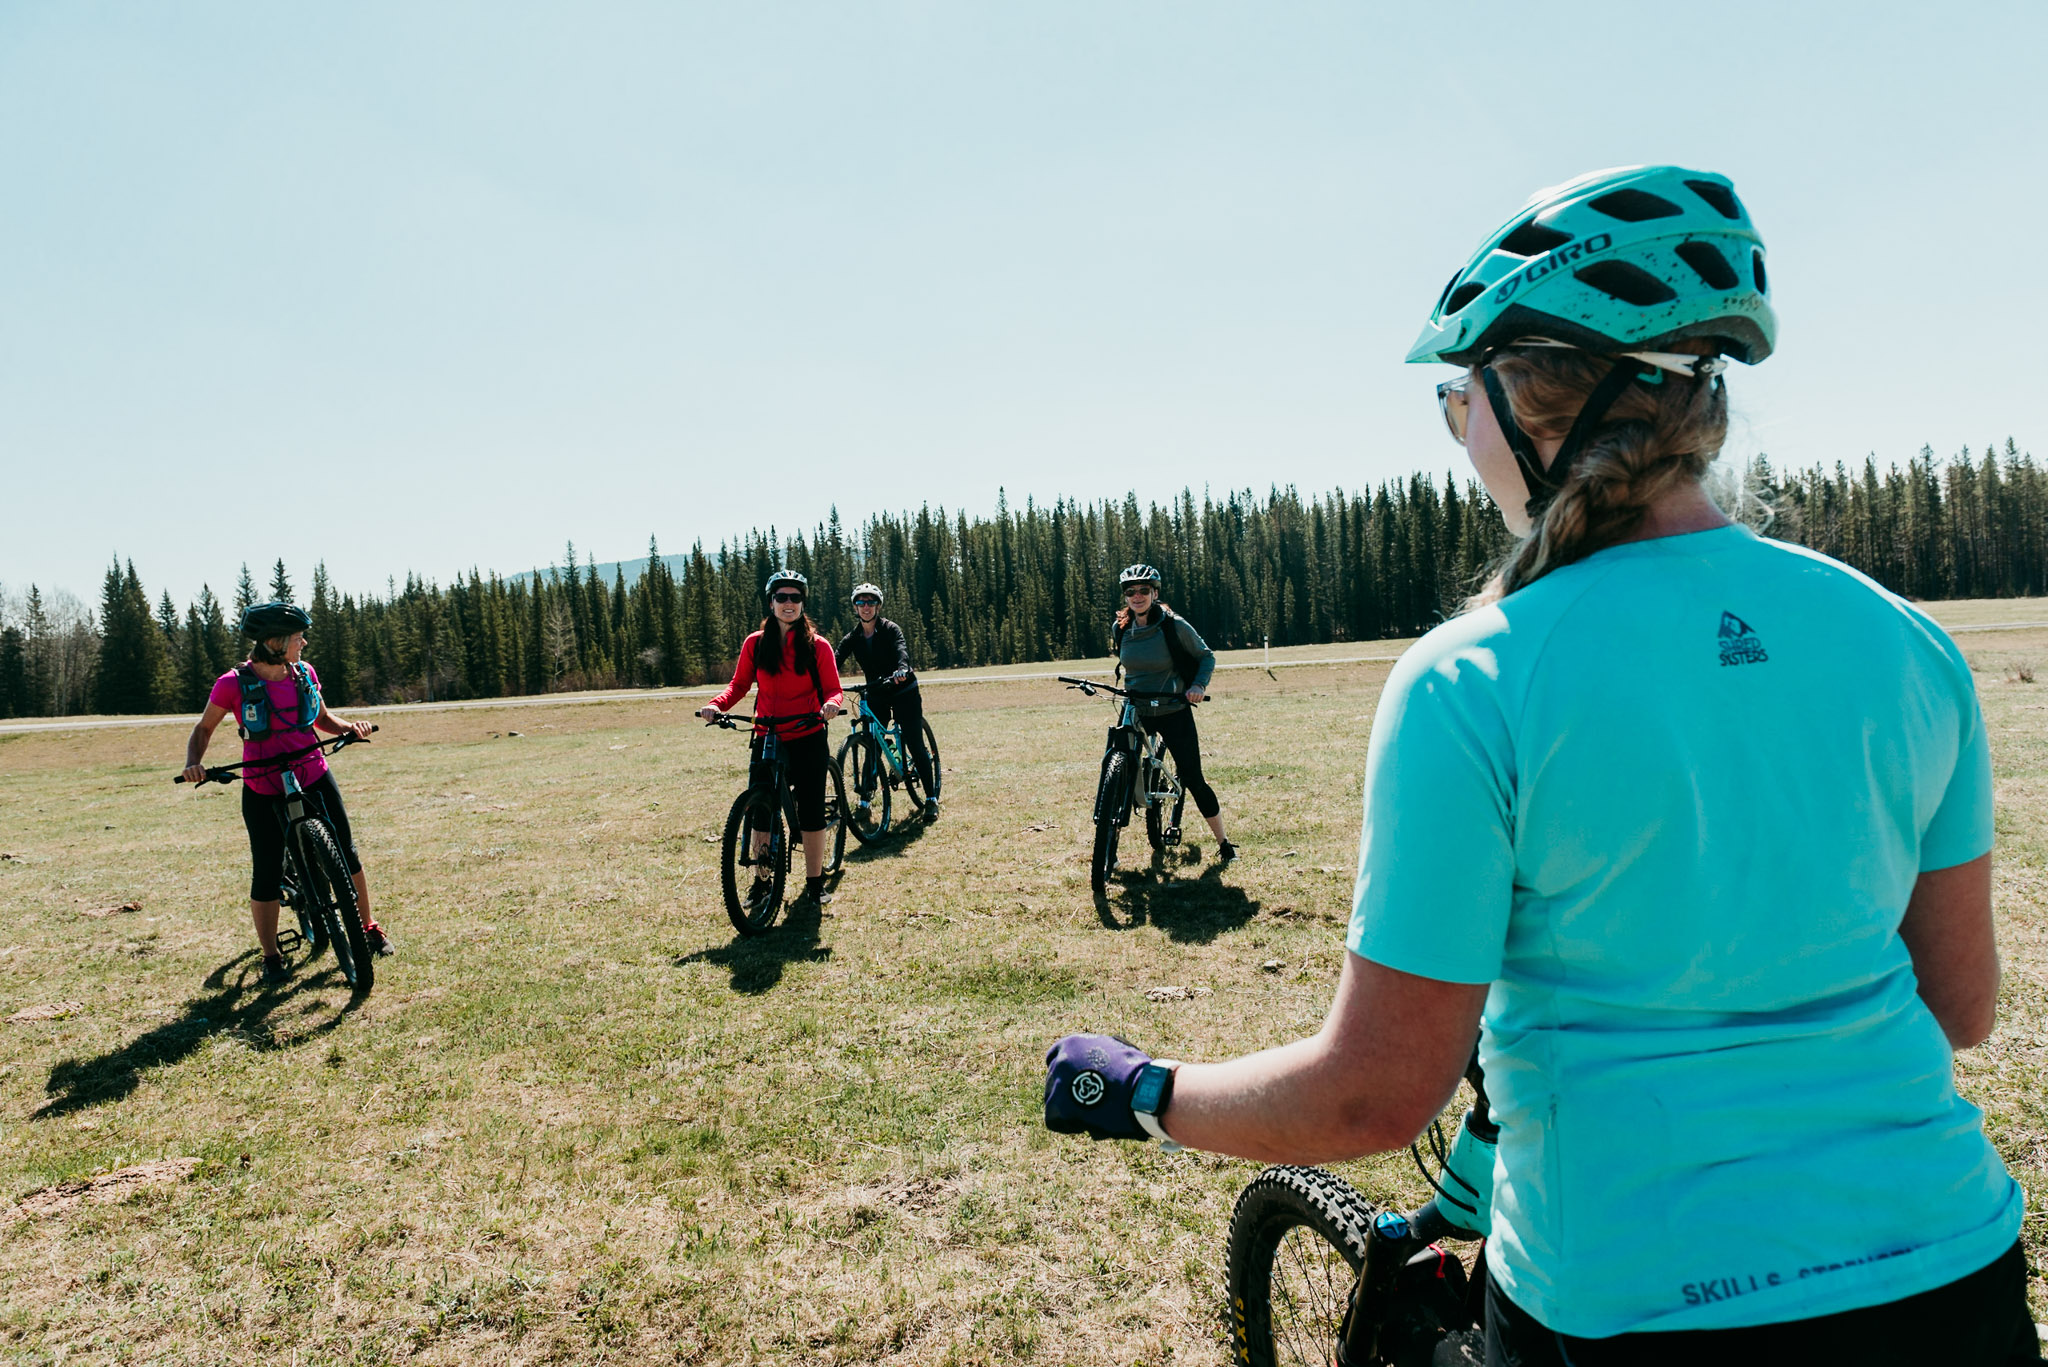 May 27, 2019 - Shred Sisters - Bragg Creek-19.jpg